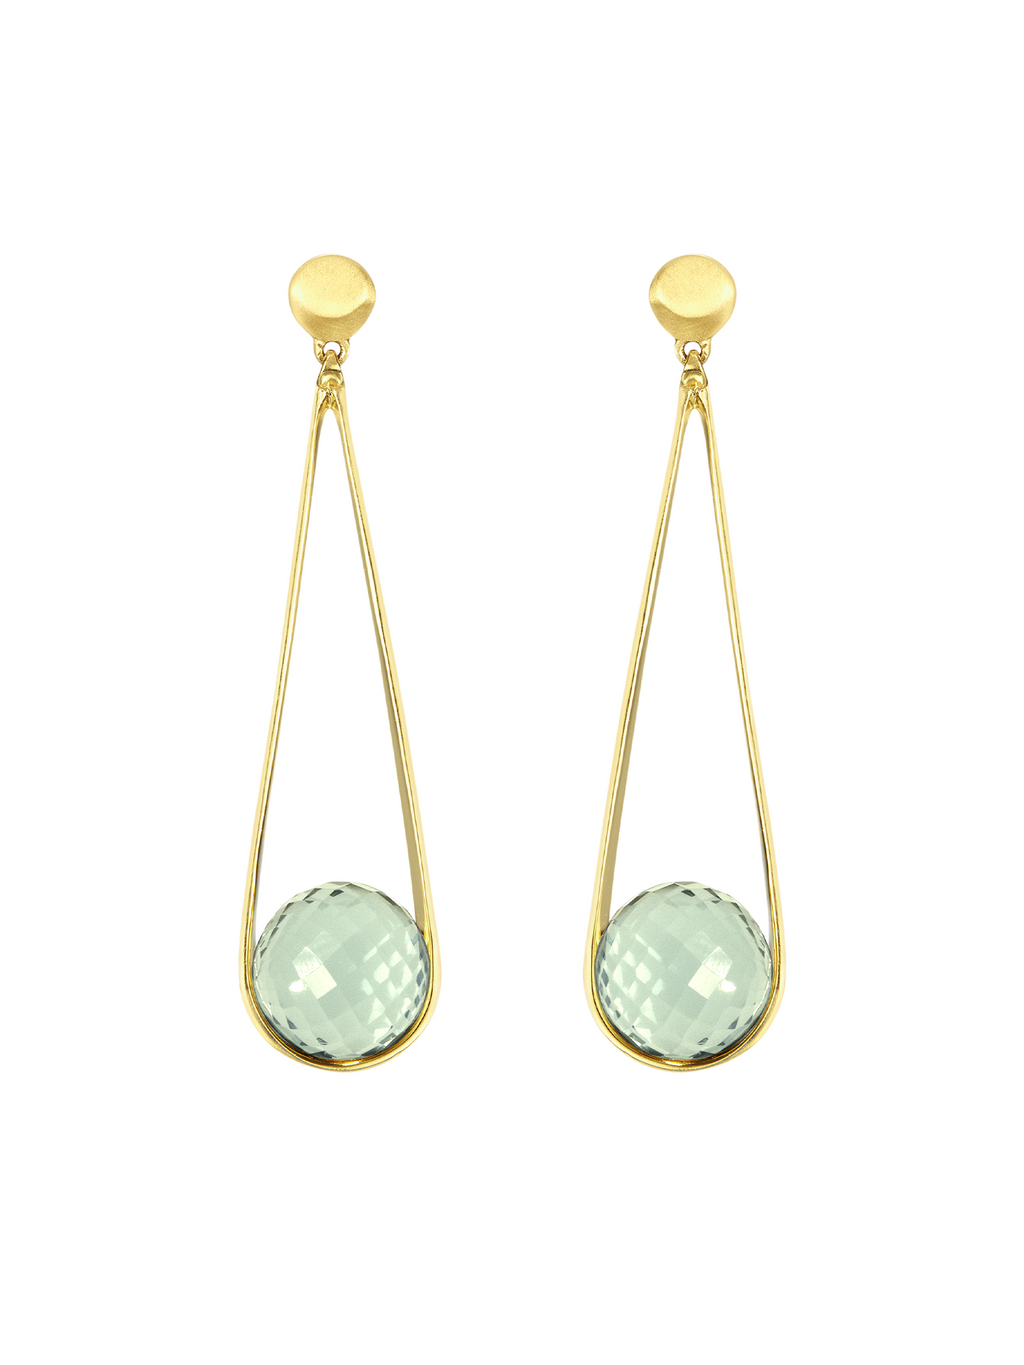 Dean Davidson Ipanema Earrings - Green Amethyst/Gold